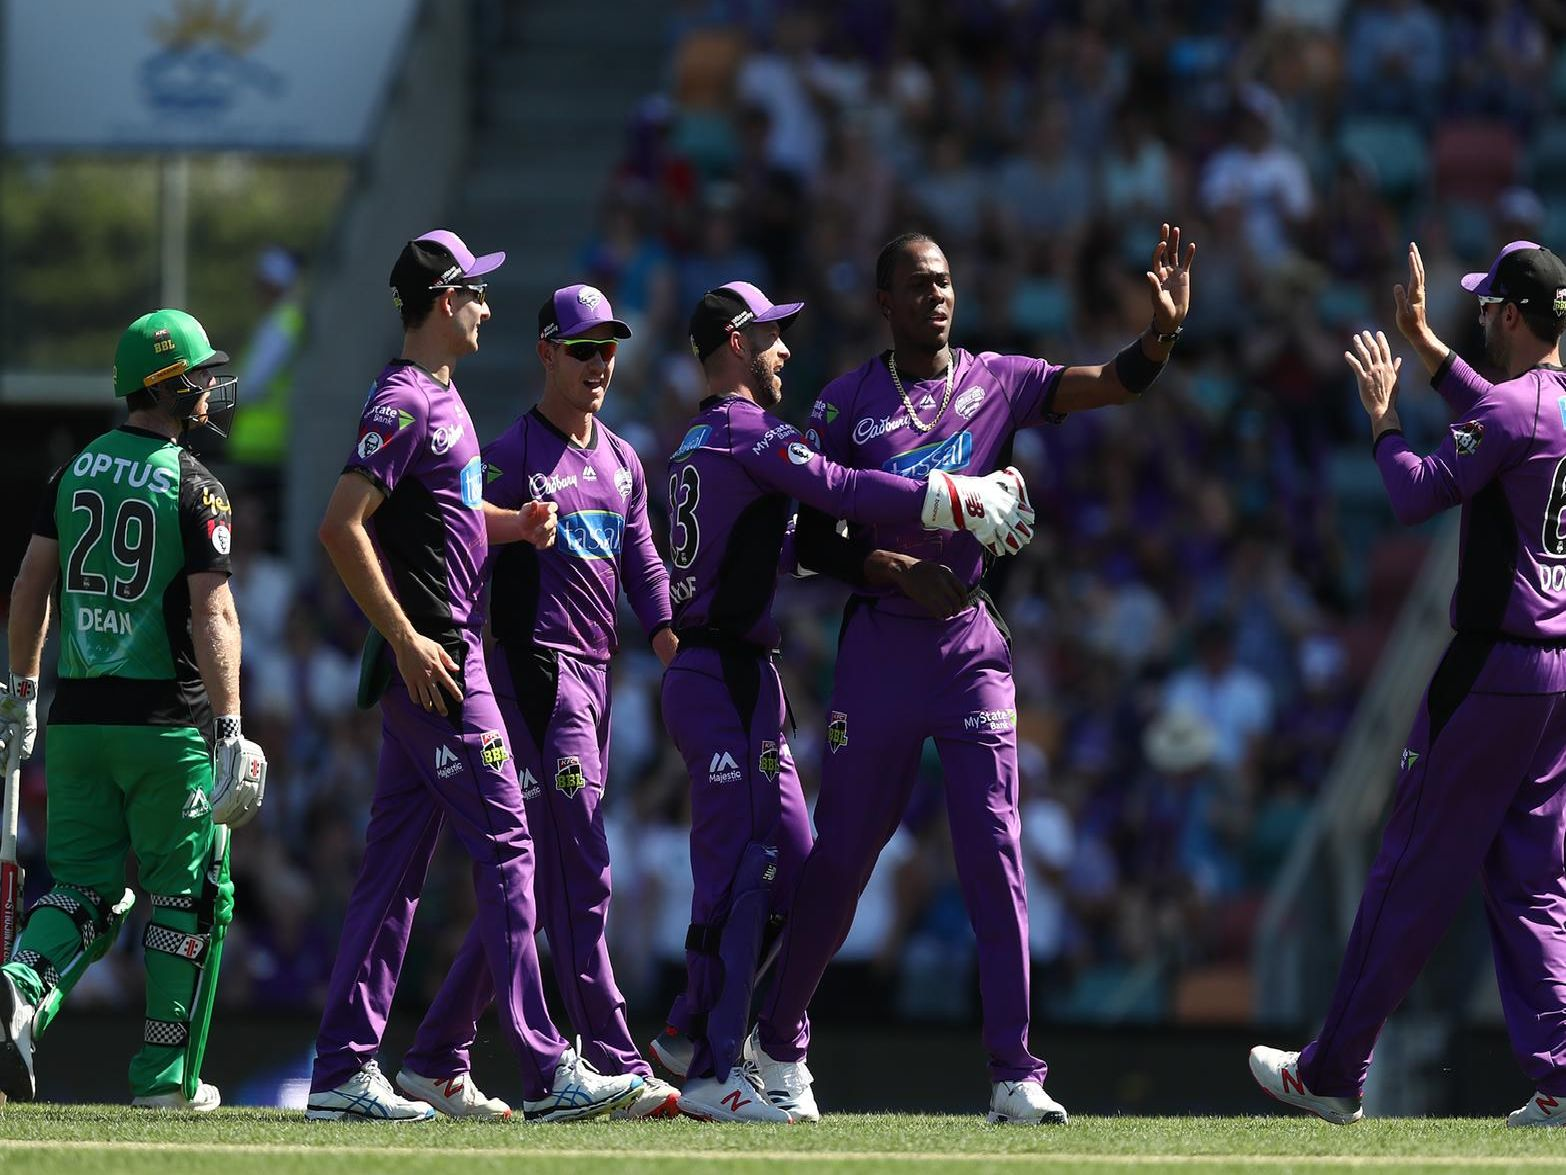 Jofra Archer celebrates taking the wicket of Travis Dean during Hobart Hurricanes v Melbourne Stars Big Bash League Match (Photo by Mark Metcalfe/Getty Images)